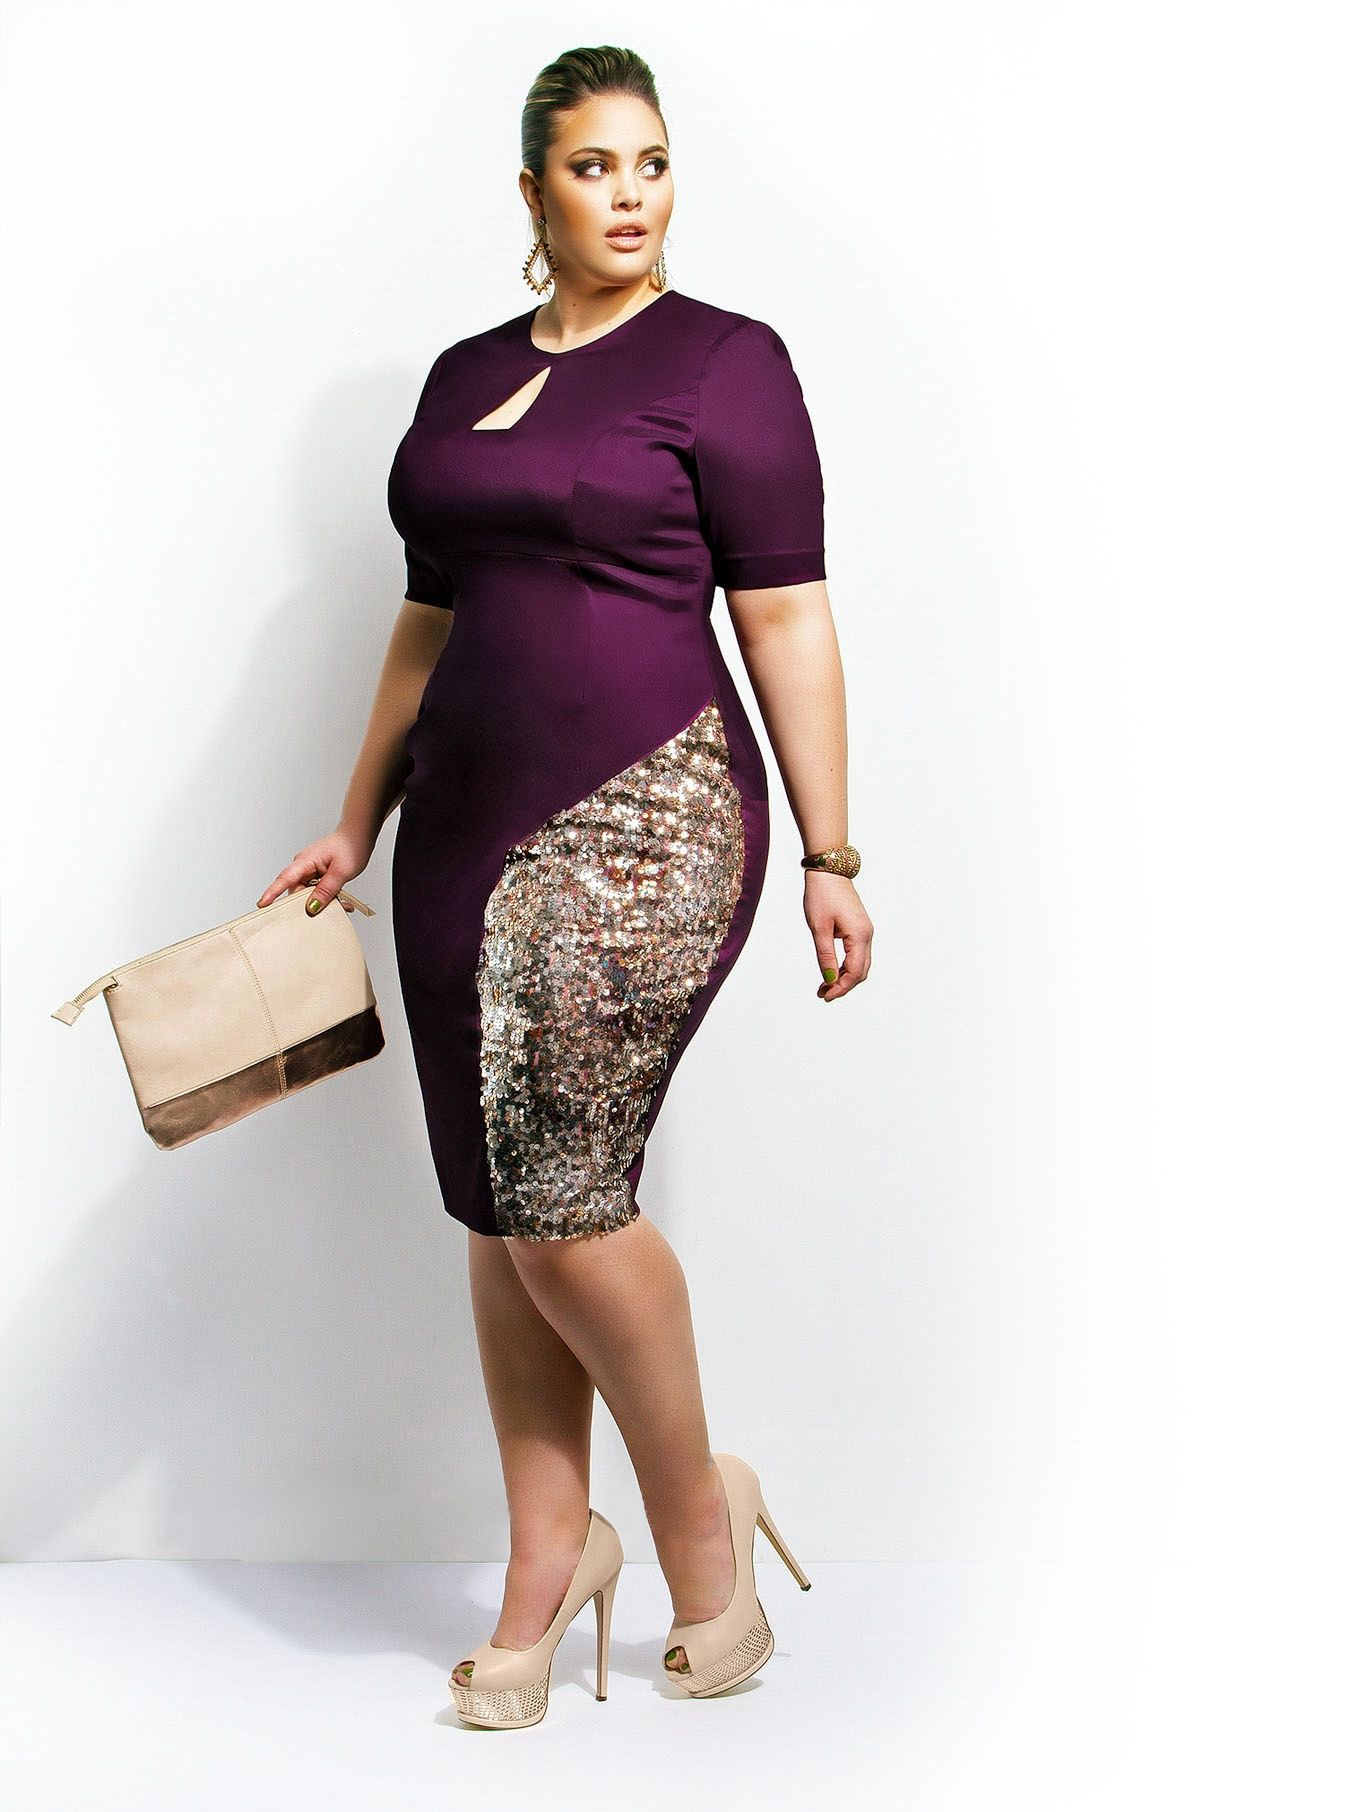 9ea36ffd24b8fb This dress makes it look like the fat on her thigh is trying to escape. No  offense to her, but the dress would be much nicer without the lighter  fabric.